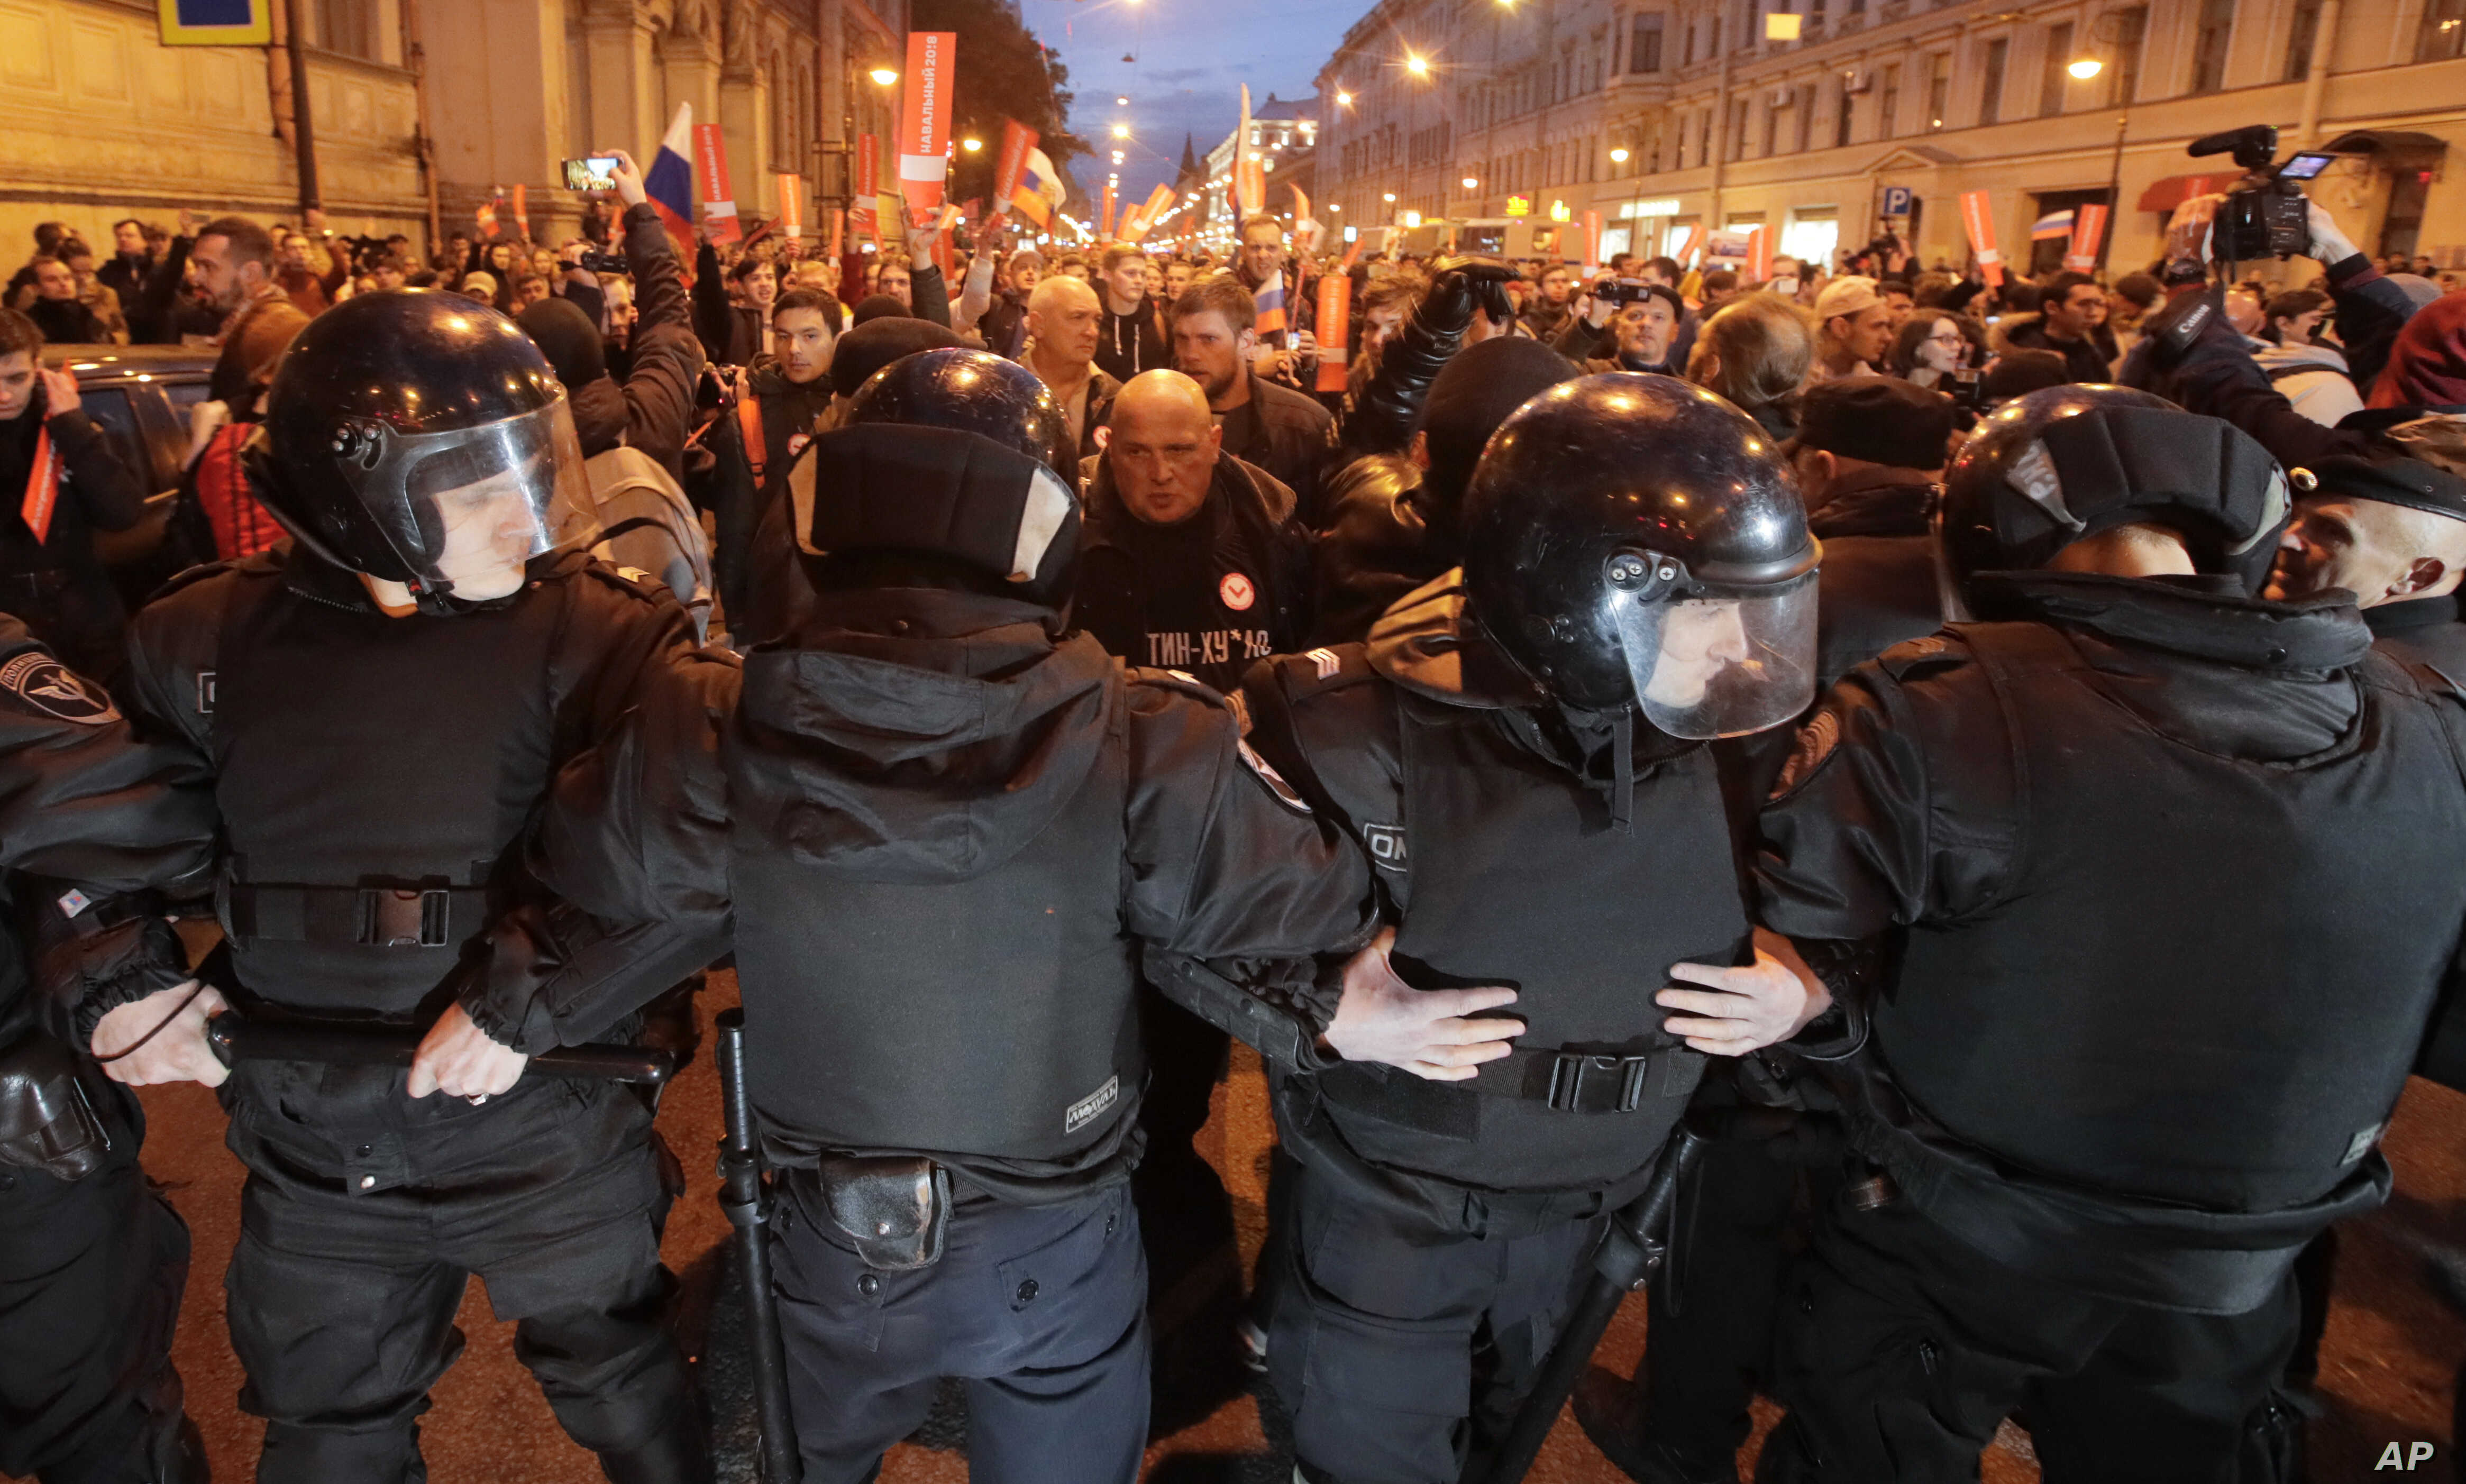 Riot police officers block the way to protesters during a rally in St. Petersburg, Russia, Oct. 7, 2017.